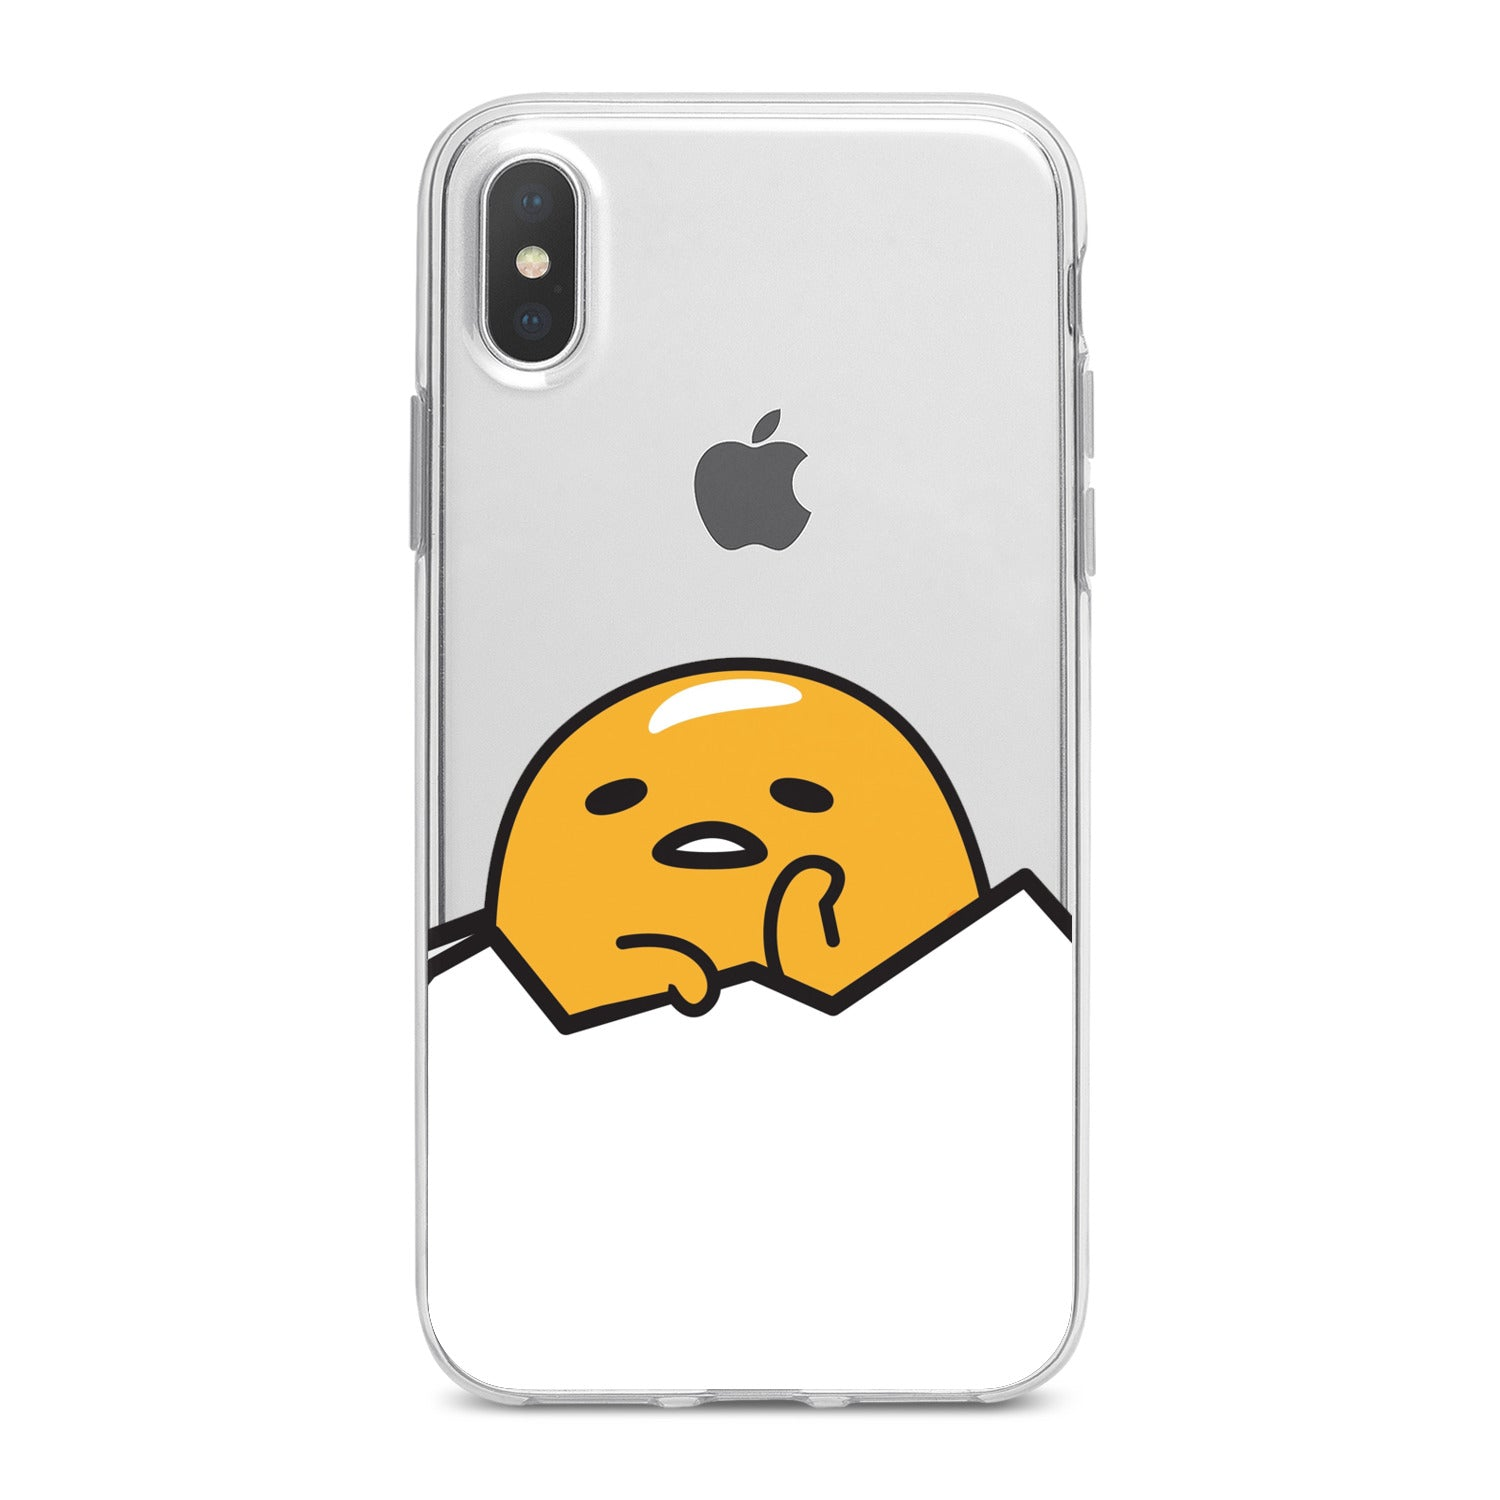 Lex Altern Sad Yolk Phone Case for your iPhone & Android phone.